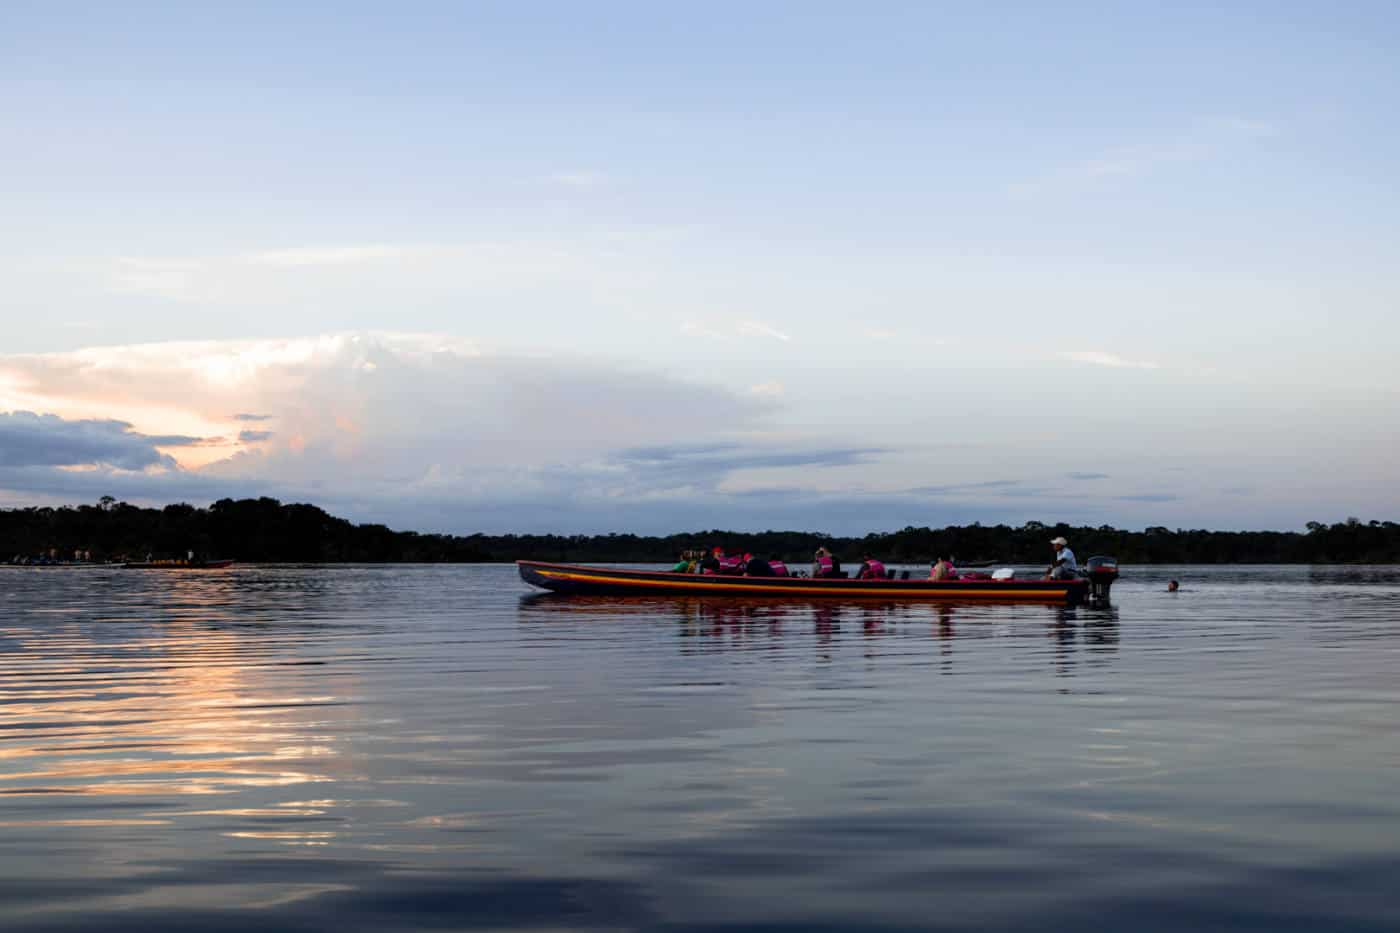 A motorised canoe tour in the Amazon Rainforest in Ecuador